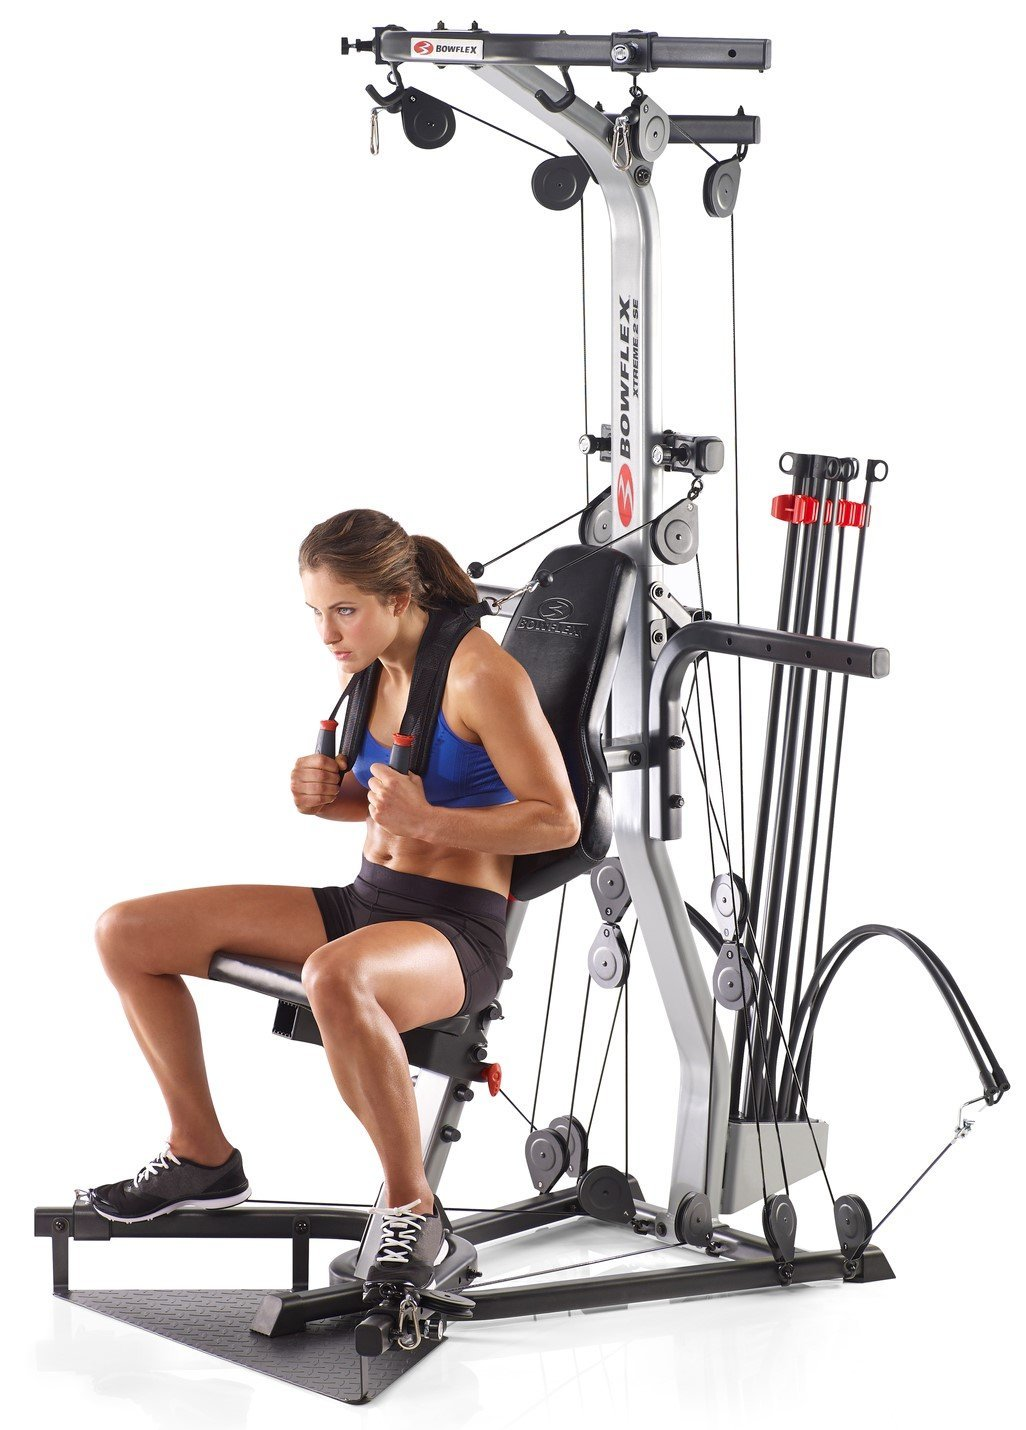 Bowflex xtreme se home gym review wxfitness